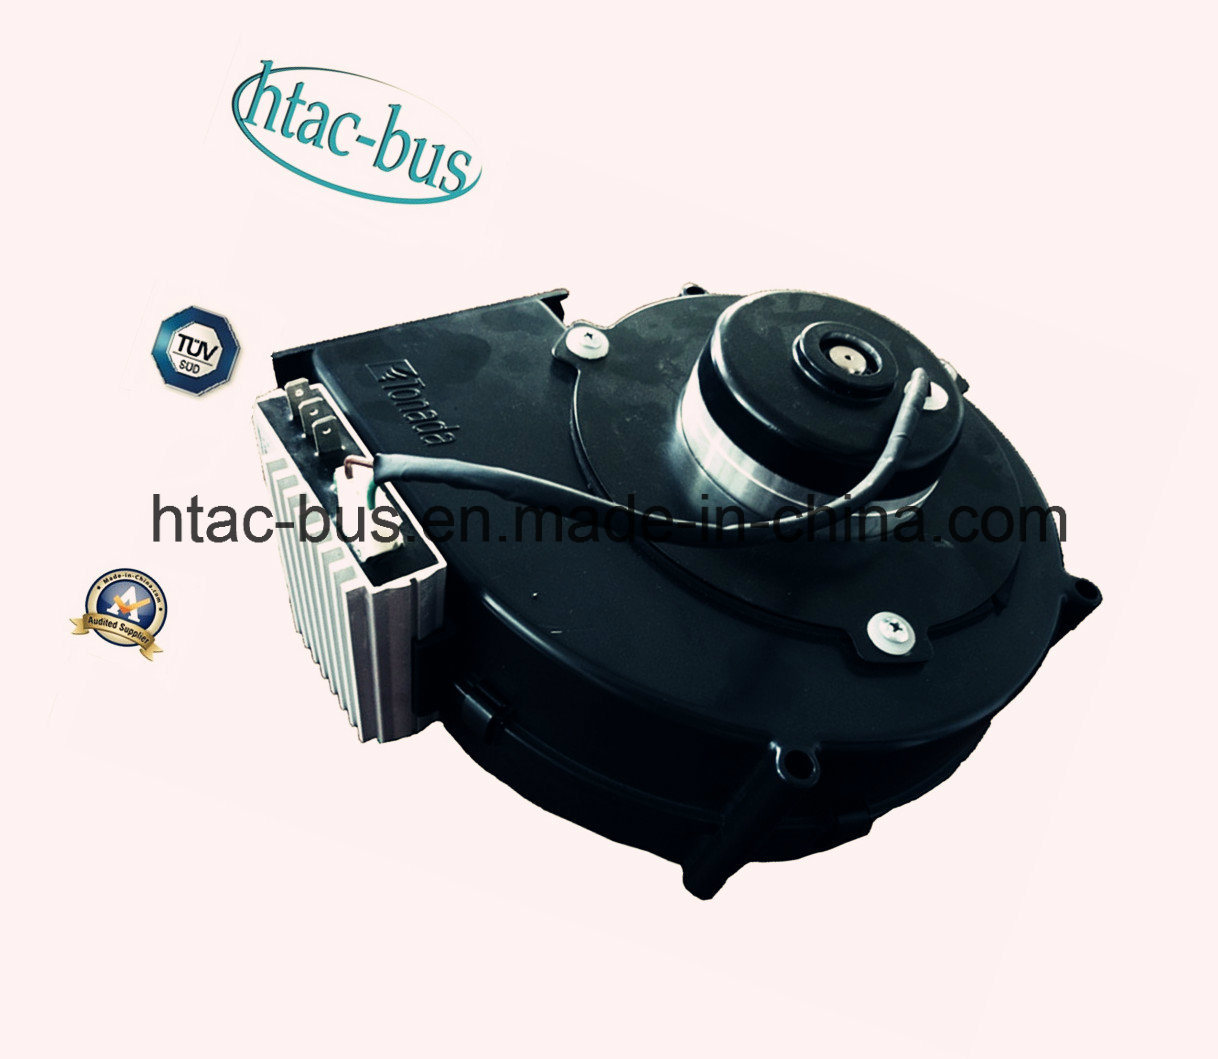 China Supplier Bus A/C Hispacold 5300066 Brushless Blower, 24V